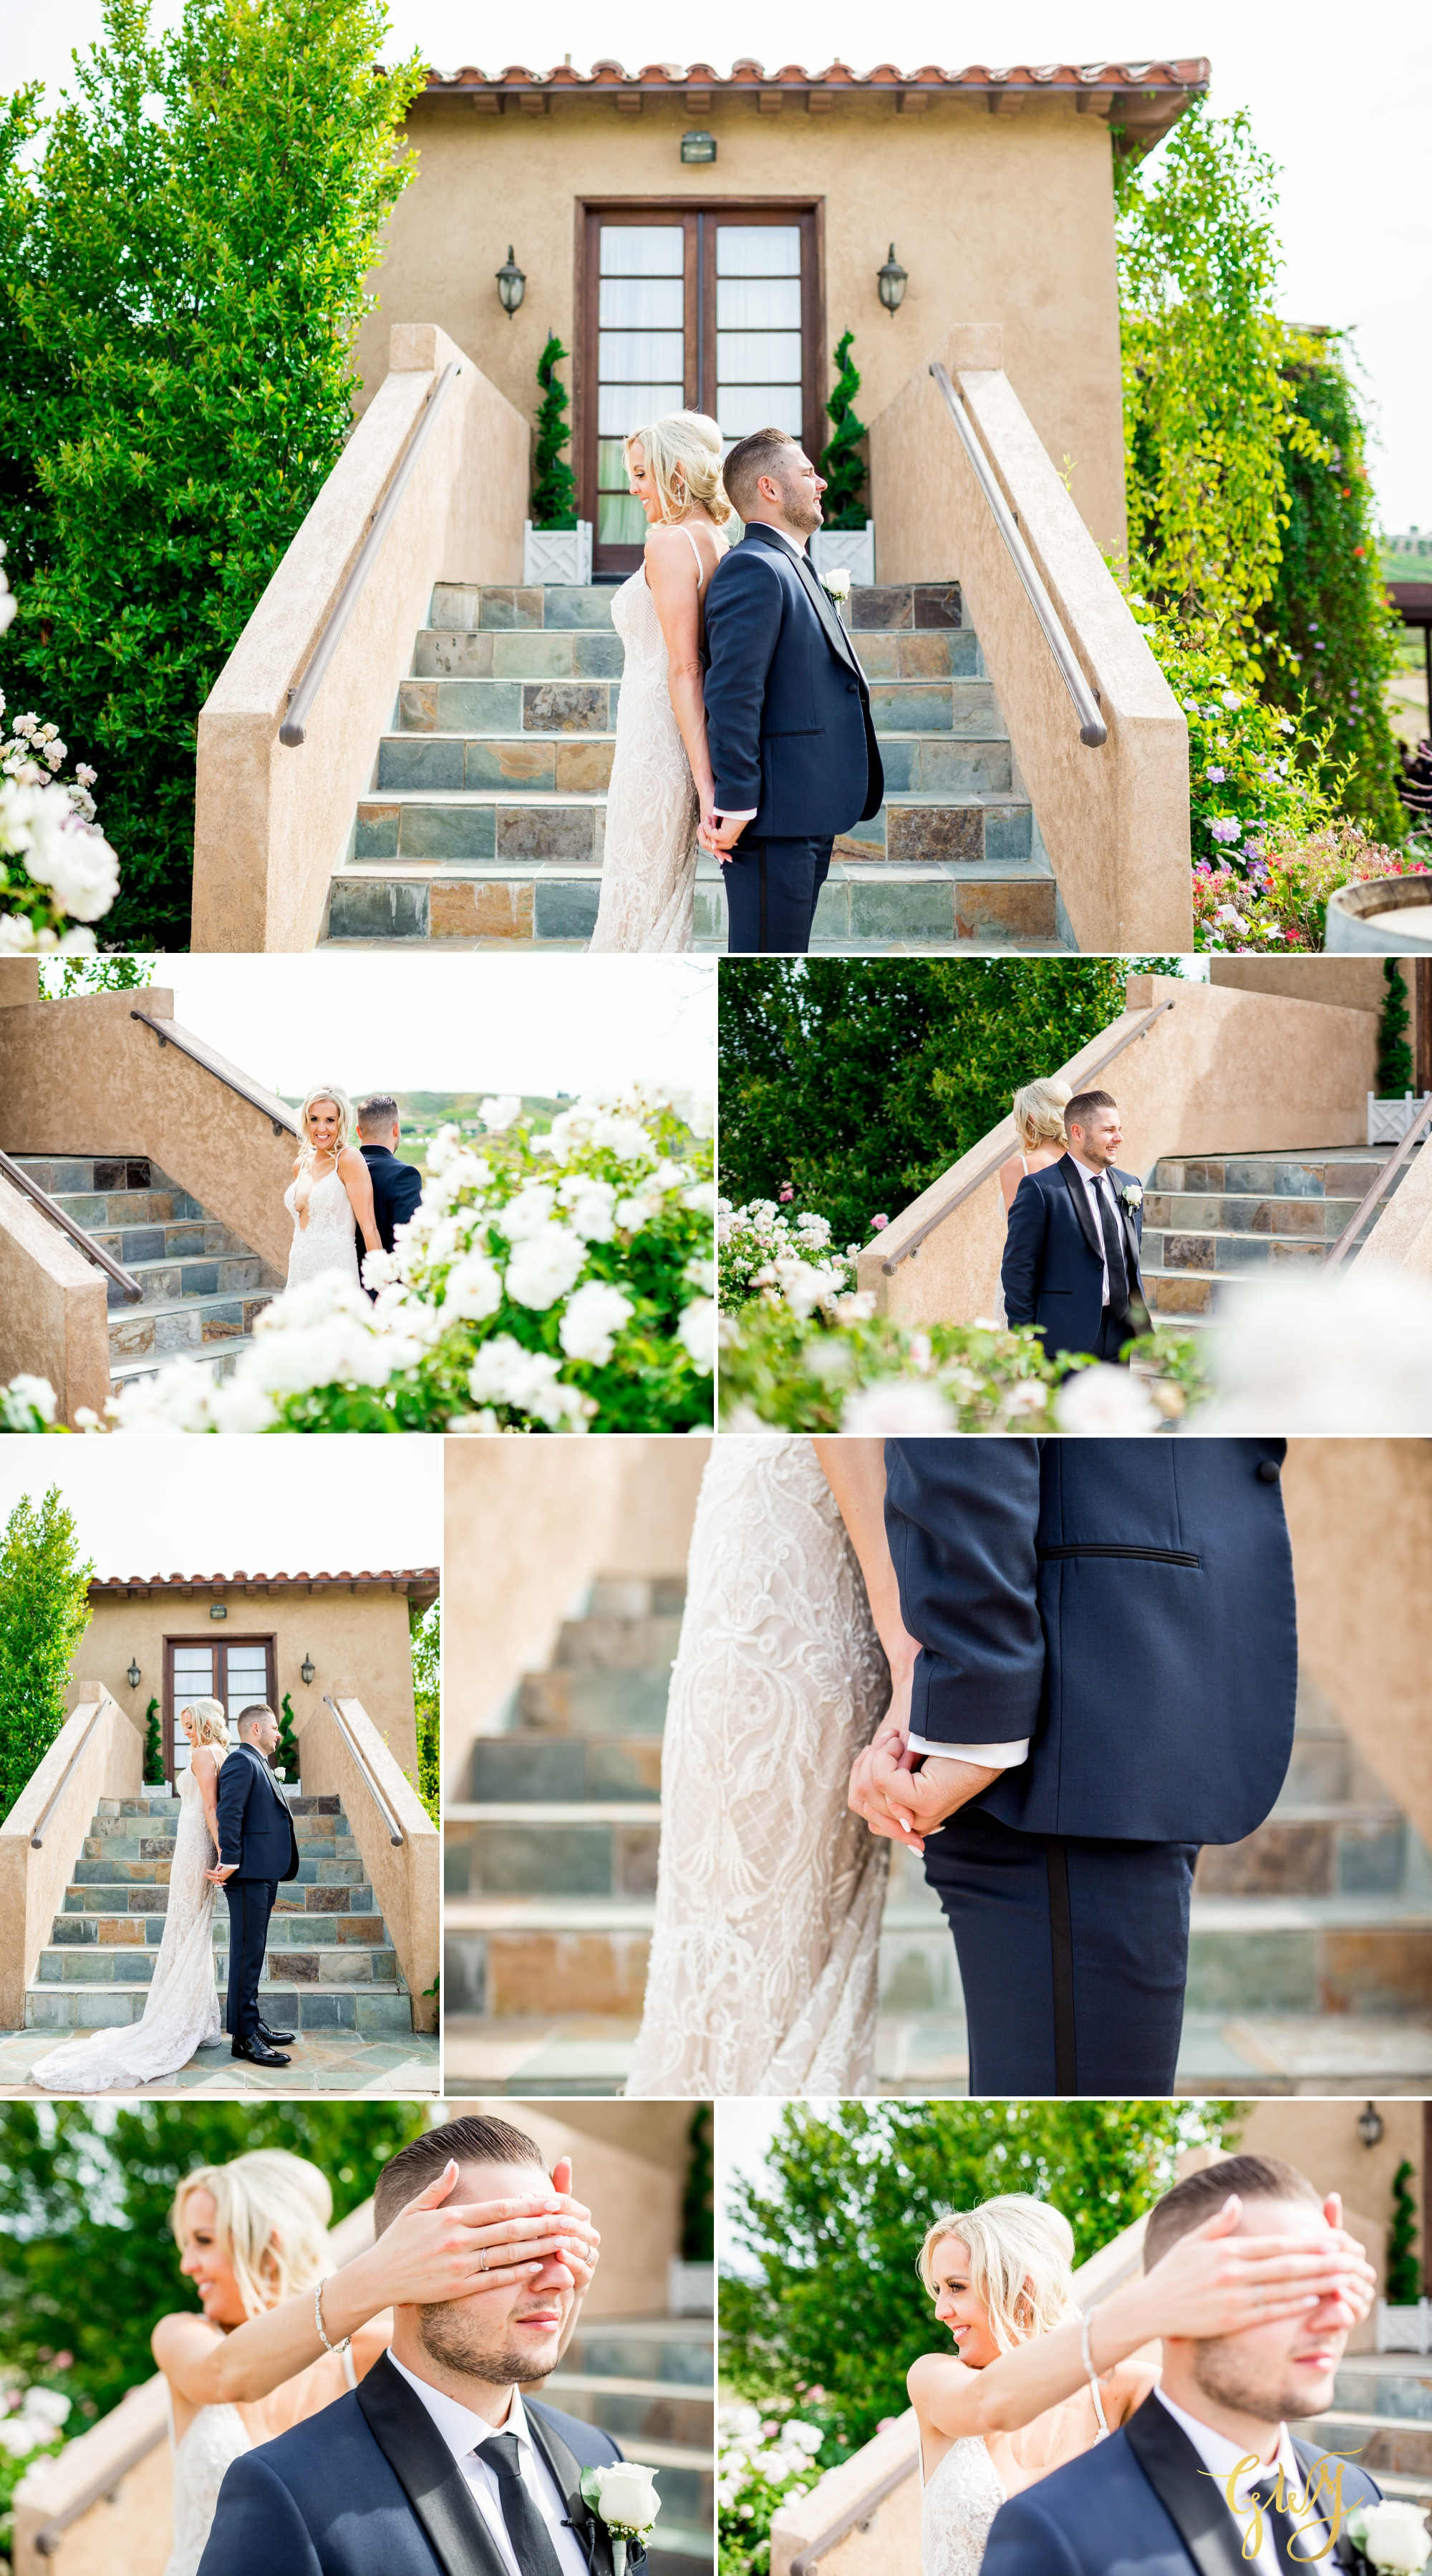 Kristen + Krsto's Romantic Temecula Winery Spring Wedding by Glass Woods Media 21.jpg